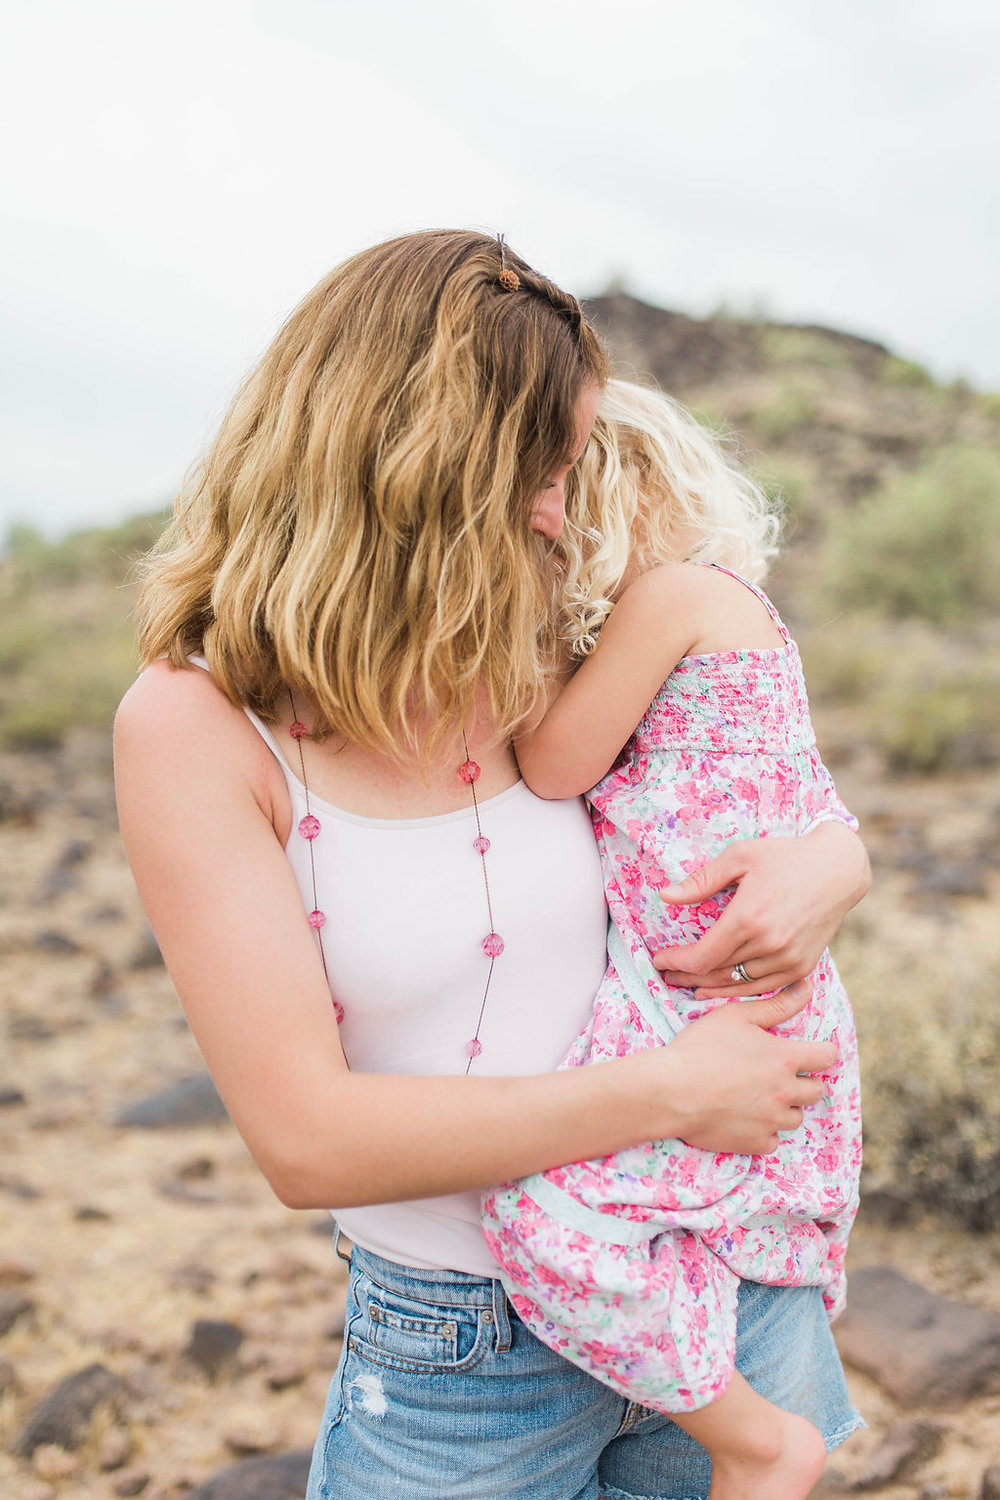 Desert Family Photo Shoot in Arizona | Emma Rose Company | Portrait Photographer | Seattle Wedding Photographer | Adorable Family Photo Shoot Outside | Family Posing | Cute Kids | Family Photo Shoot | Husband and Wife Pictures | What to Wear for pictures | Mother Daughter Pictures